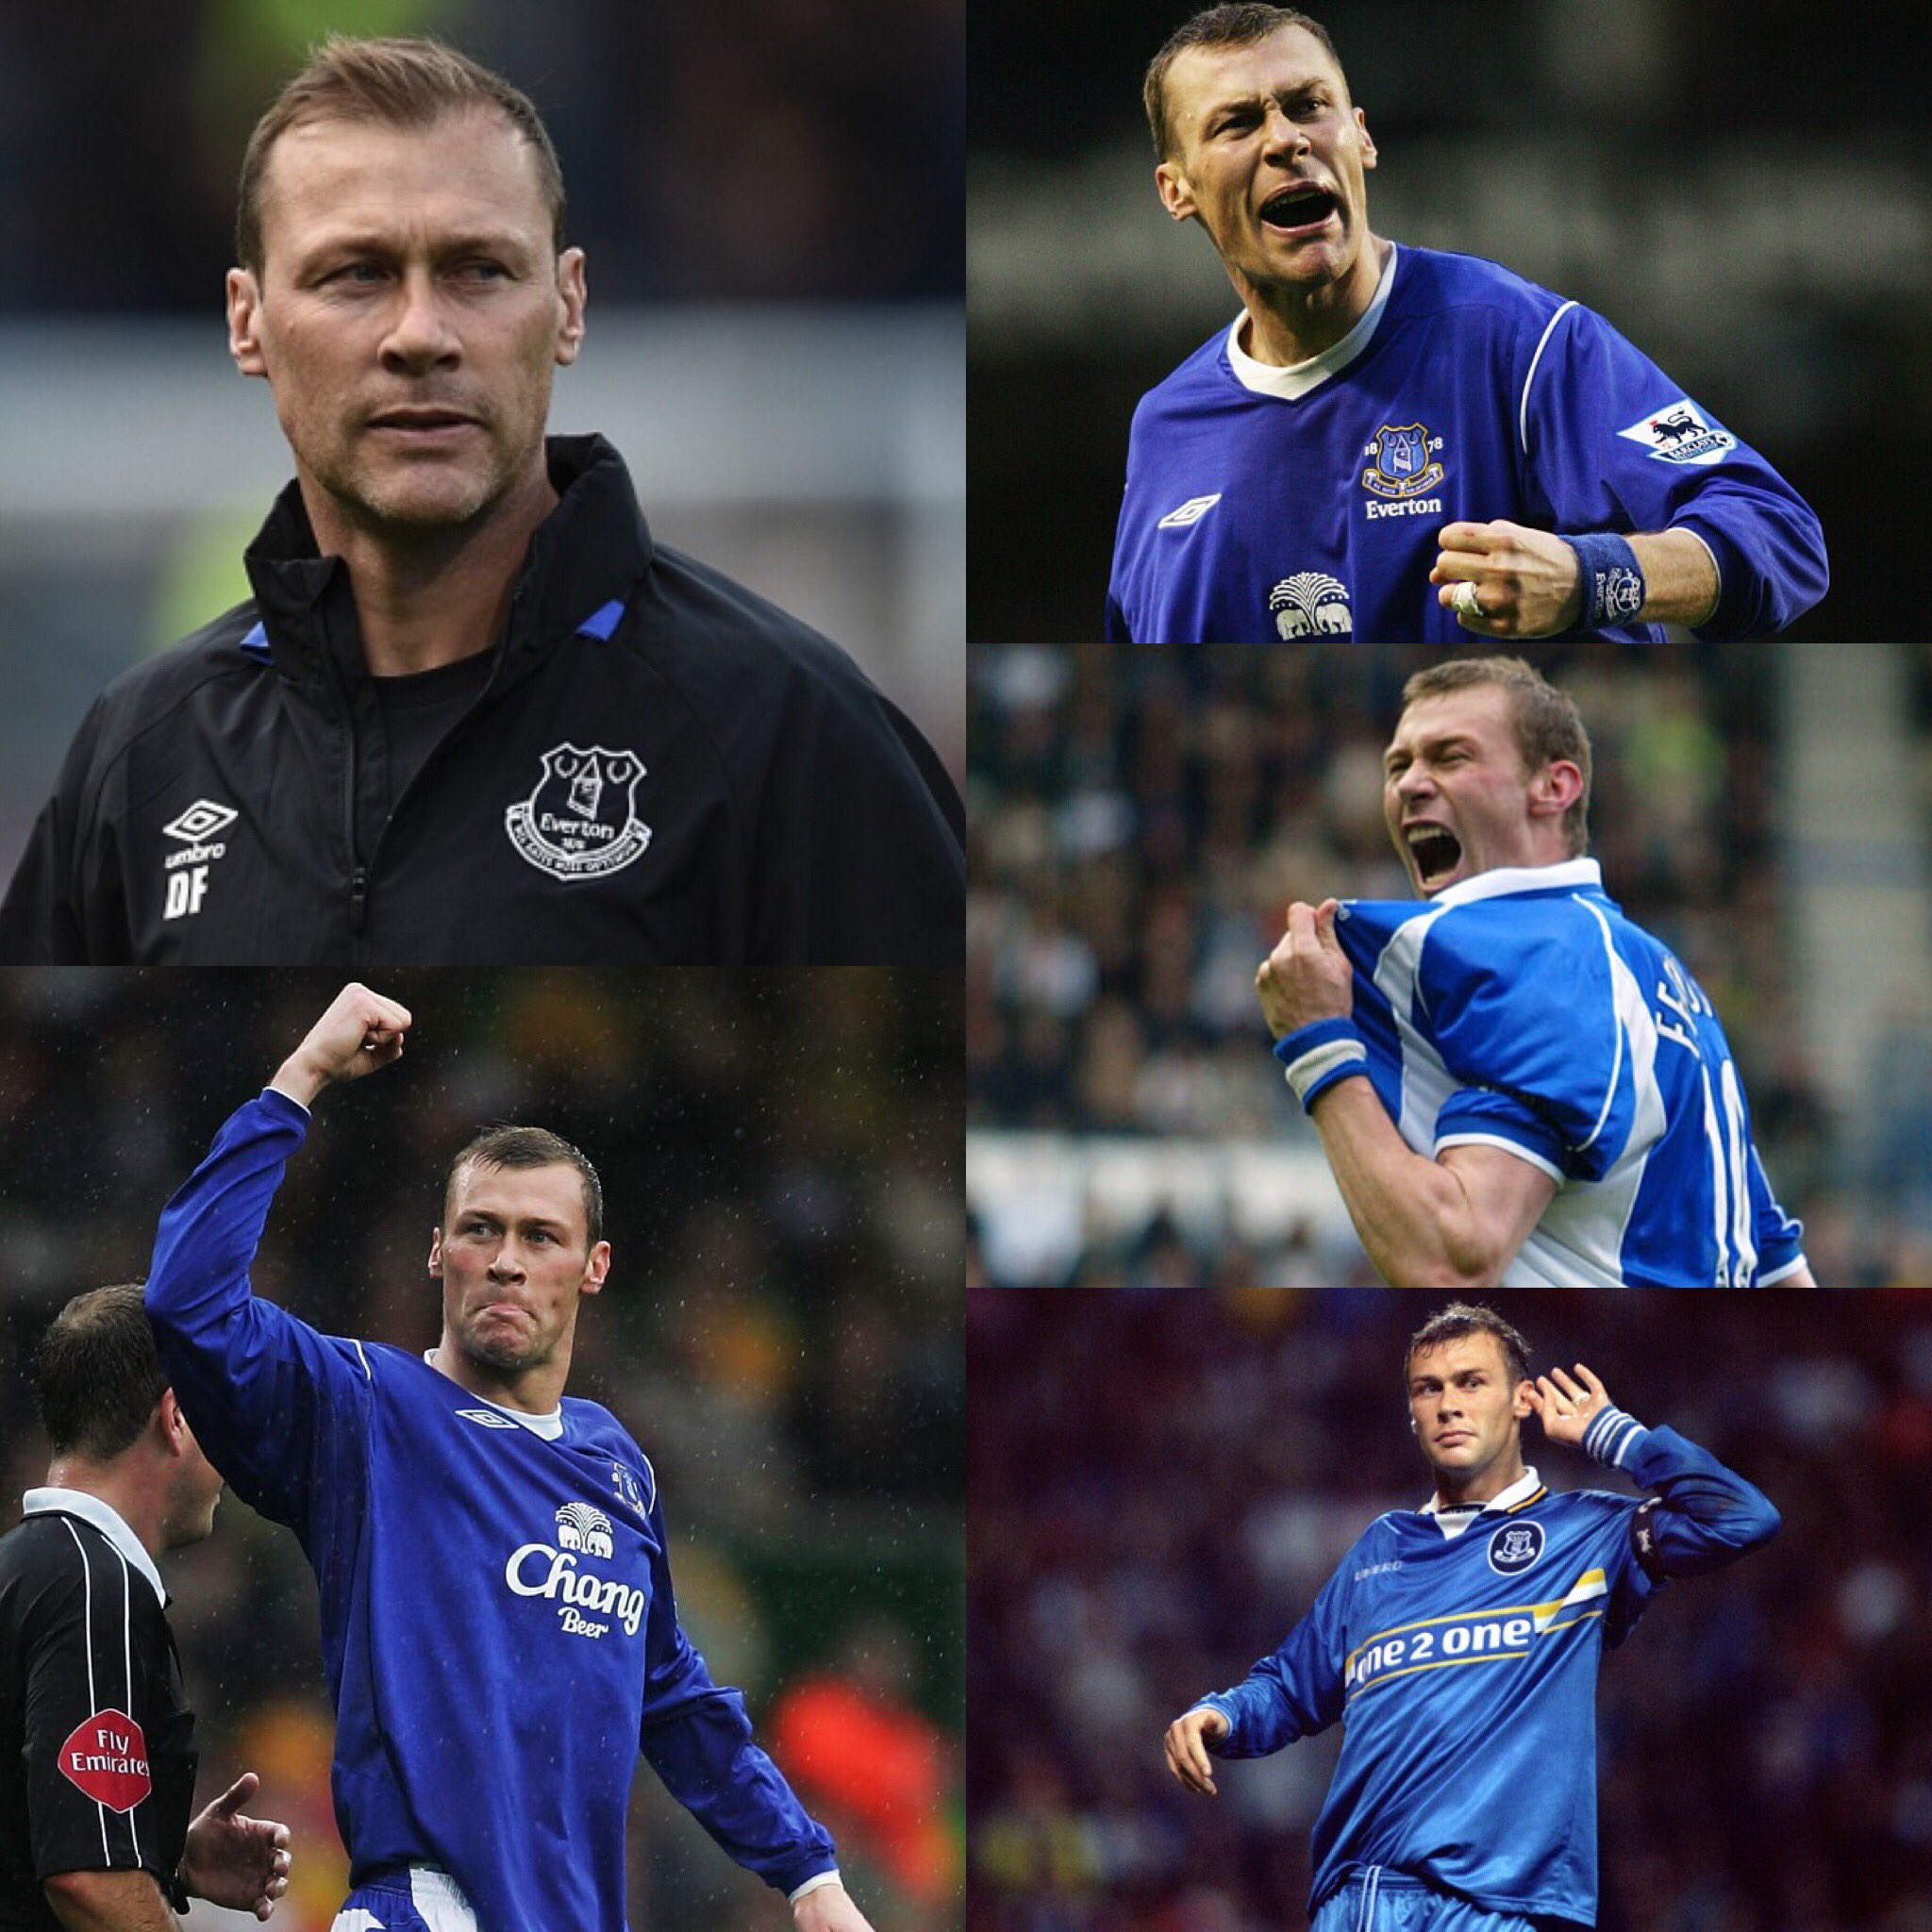 Happy 47th Birthday to Everton legend and first team coach Duncan Ferguson